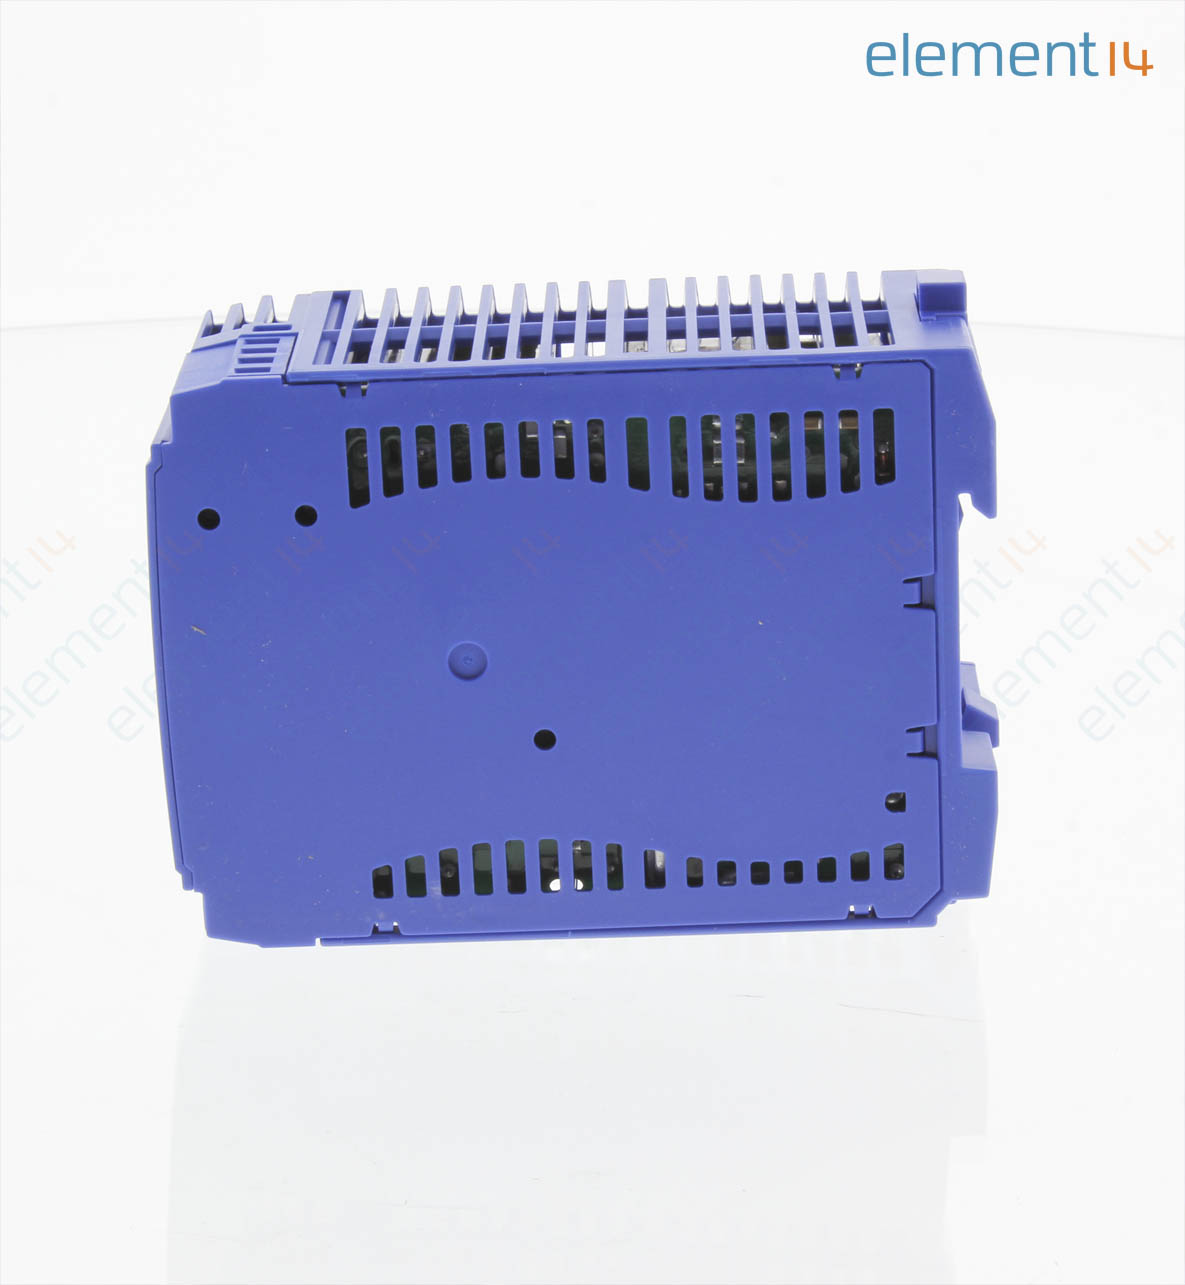 Drb 100 24 1 Tdk Lambda Ac Dc Din Rail Power Supply Psu Ite Electronics Learning Circuits Webonly Products Technology Output 1008 W Vdc 42 A